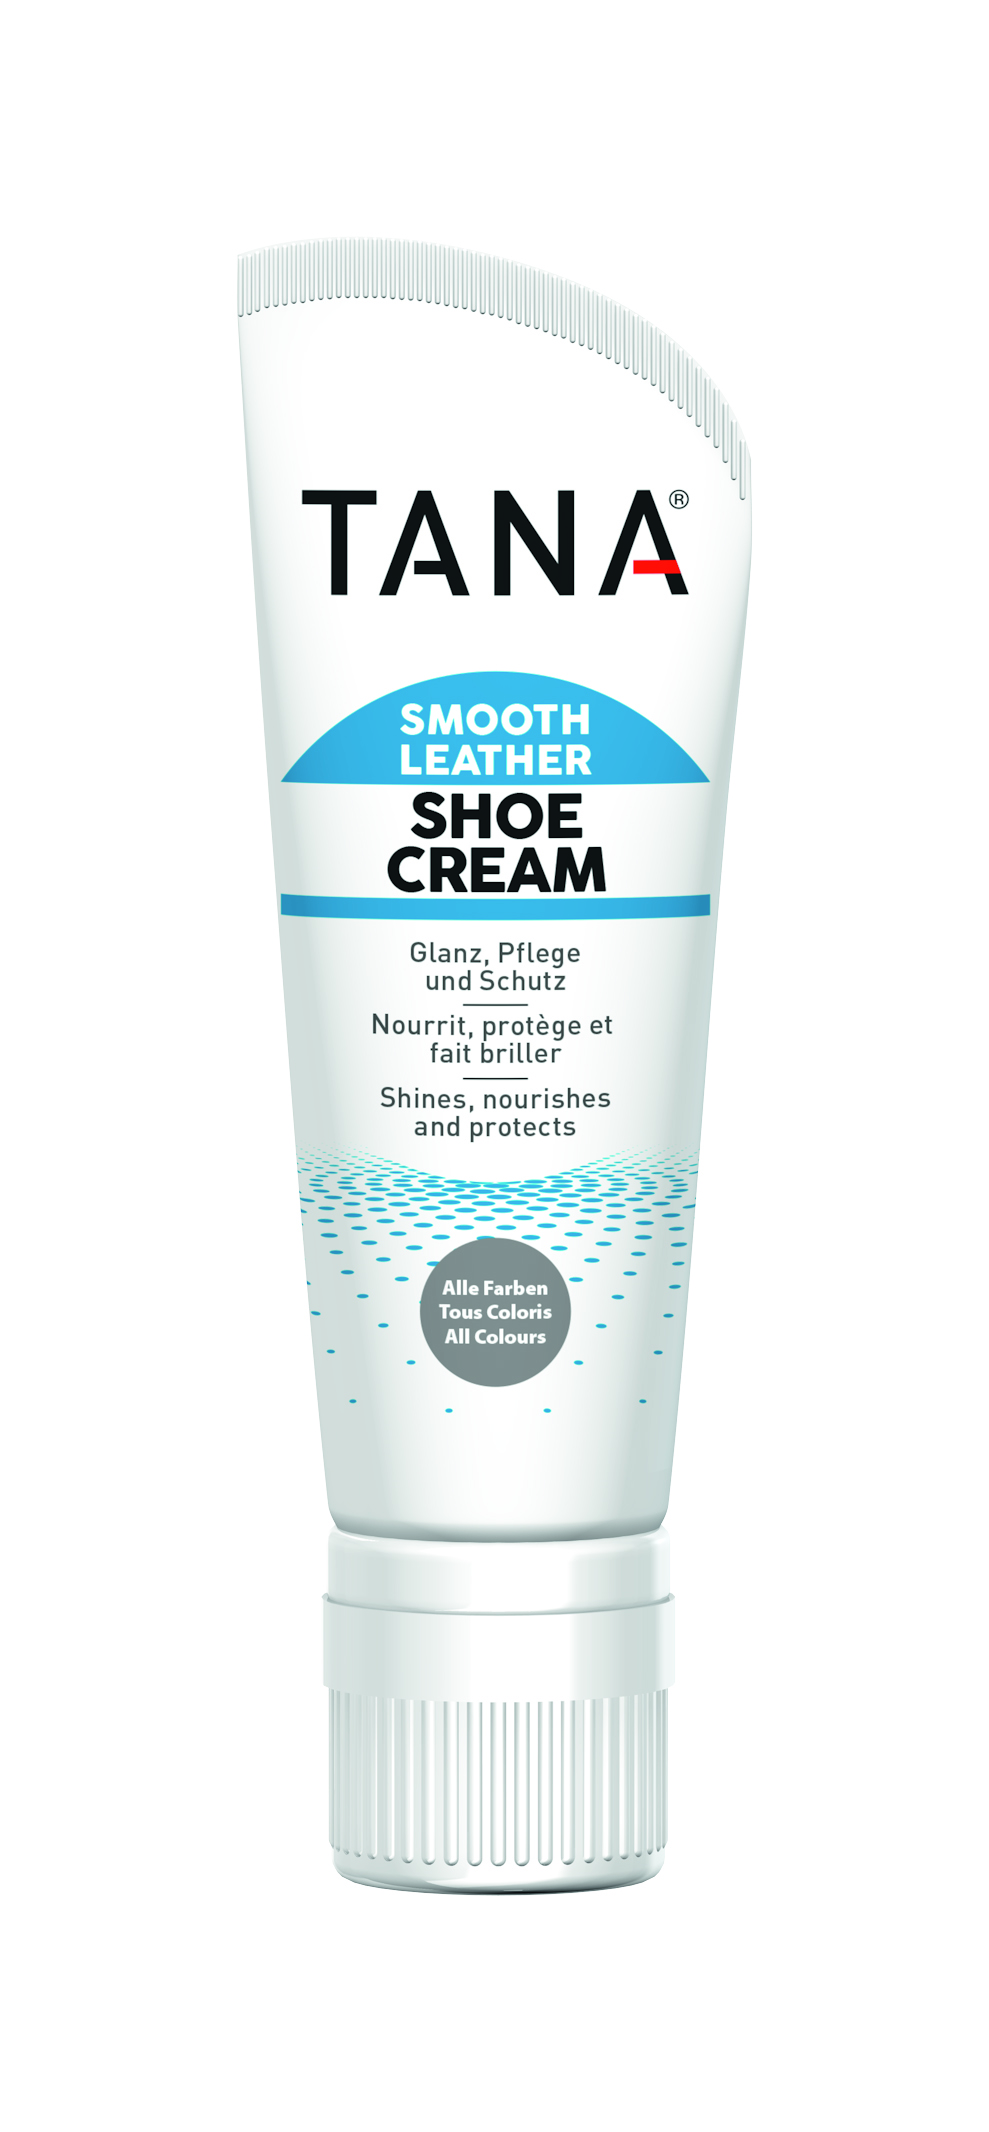 TANA Shoe Cream farblos